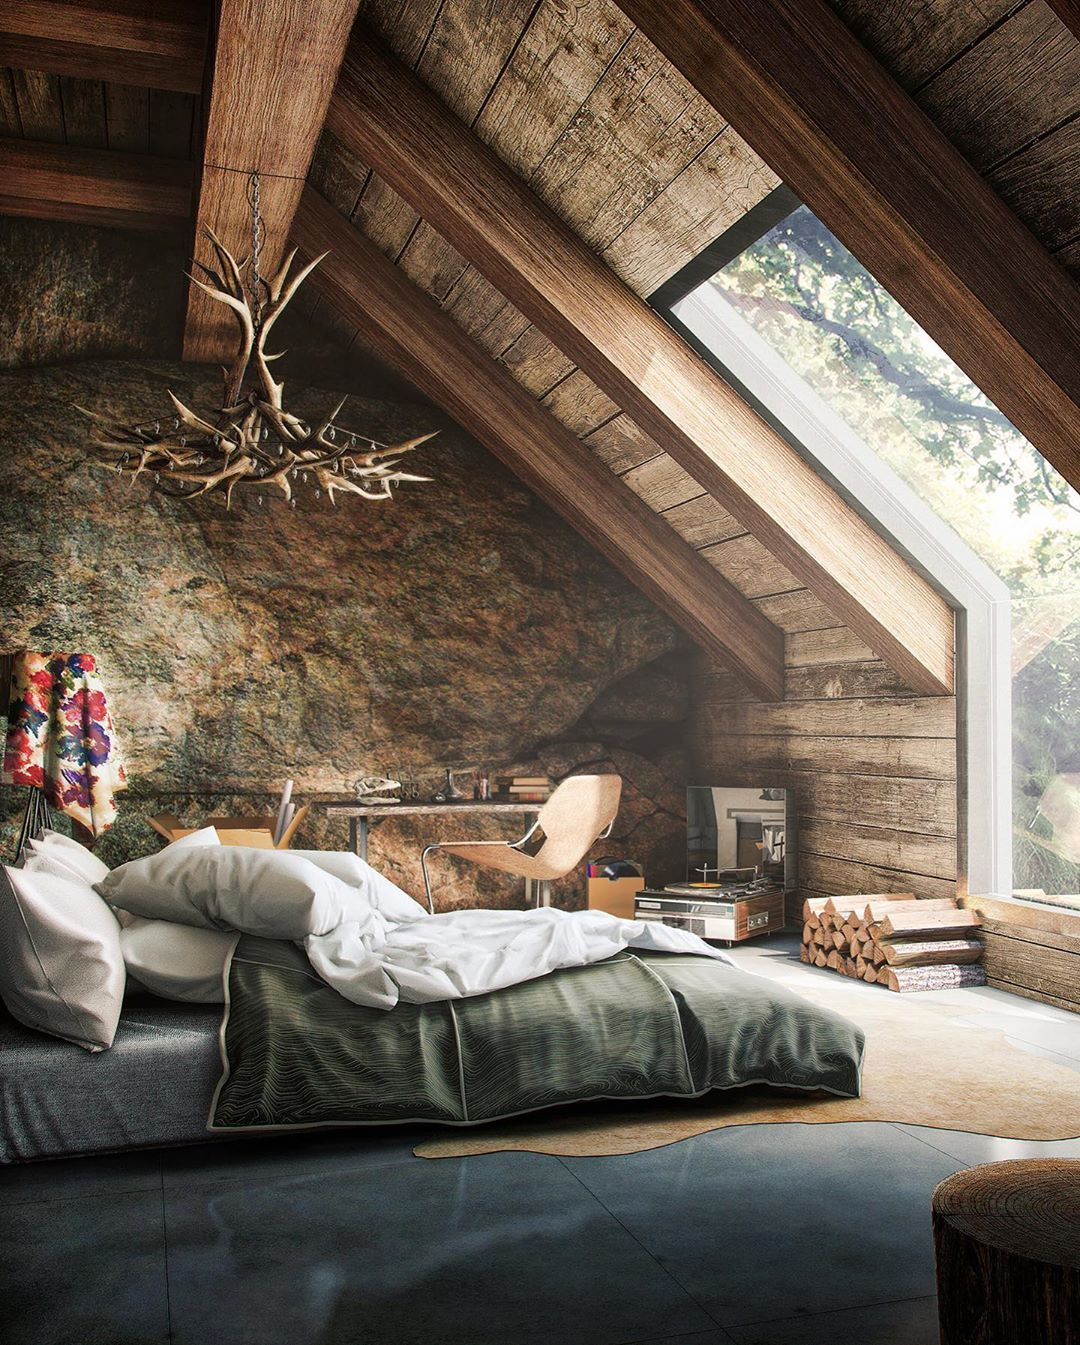 Architecture Design On Instagram Which Bedroom Is Your Favourite 1 2 3 4 Or 5 The First One Is A Rustic Cab Rustic Loft Rustic Bedroom Rustic House